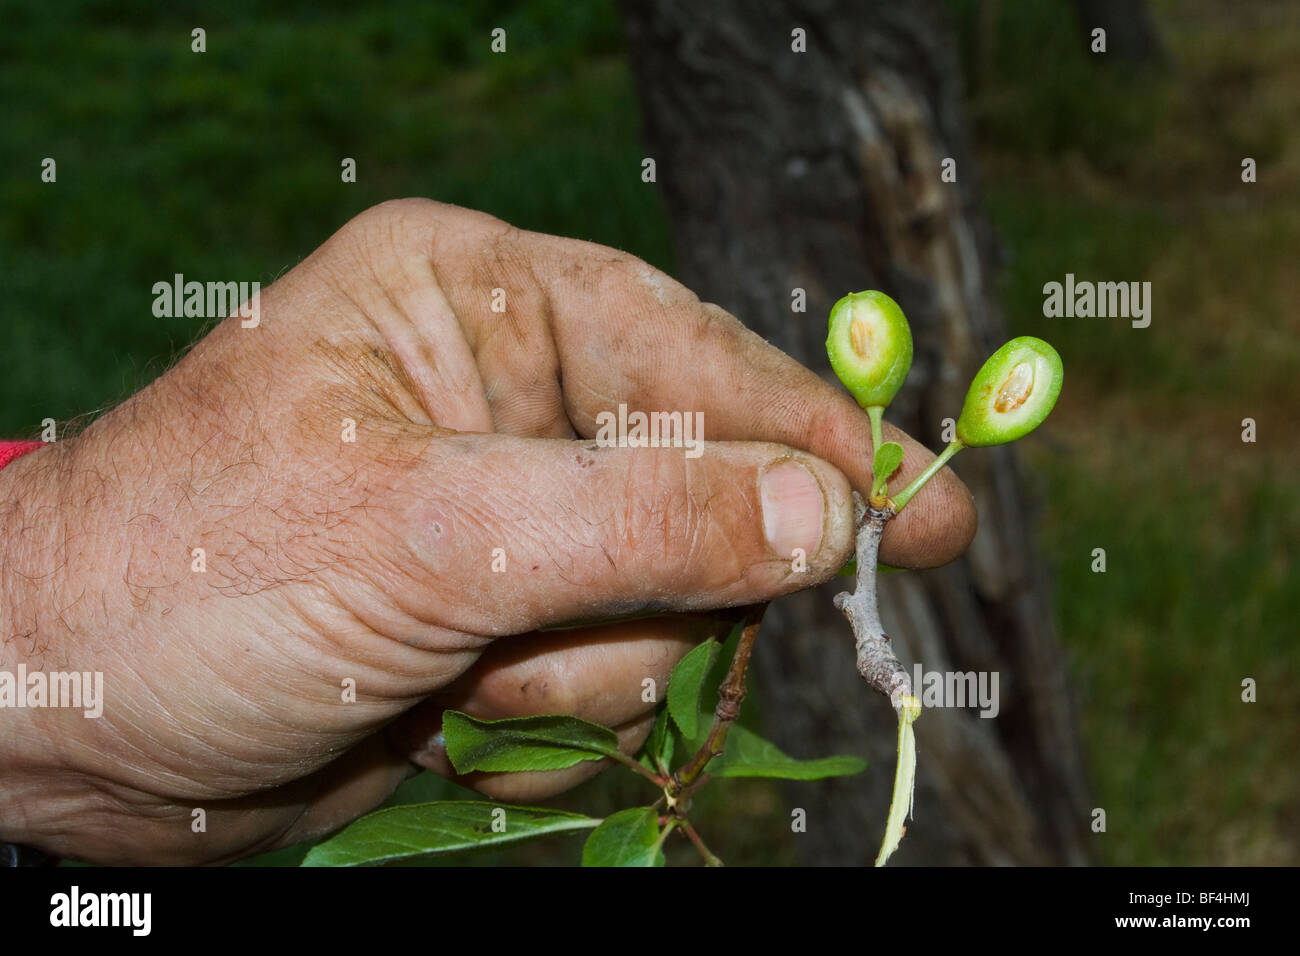 The hand of a prune grower holding damaged immature prunes caused by a heavy unusual Spring freeze / Red Bluff, - Stock Image